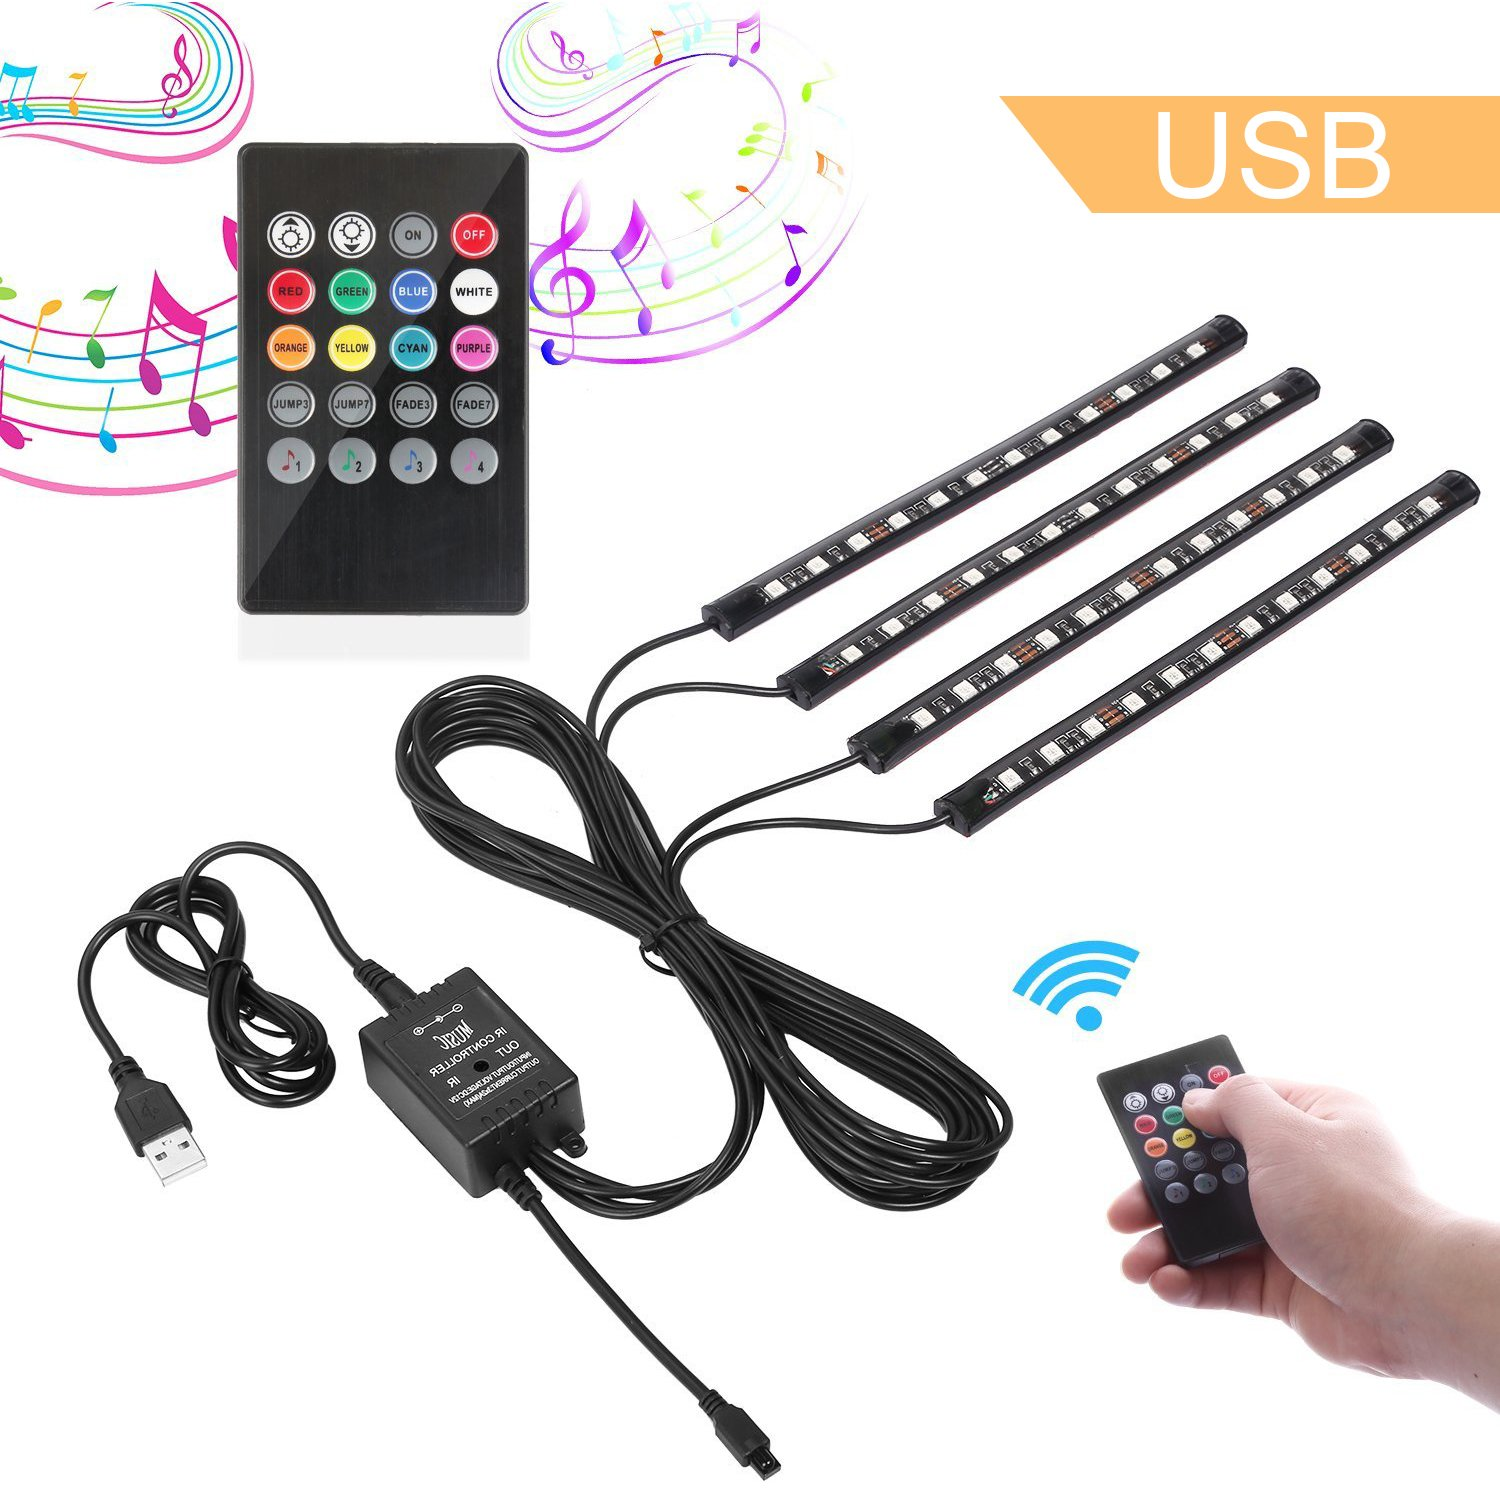 Car LED Strip Lights, Guaiboshi 4PCS 48leds USB Powered Atmosphere Lights/Interior Lights for Car with Music Sound Active, Remote Included